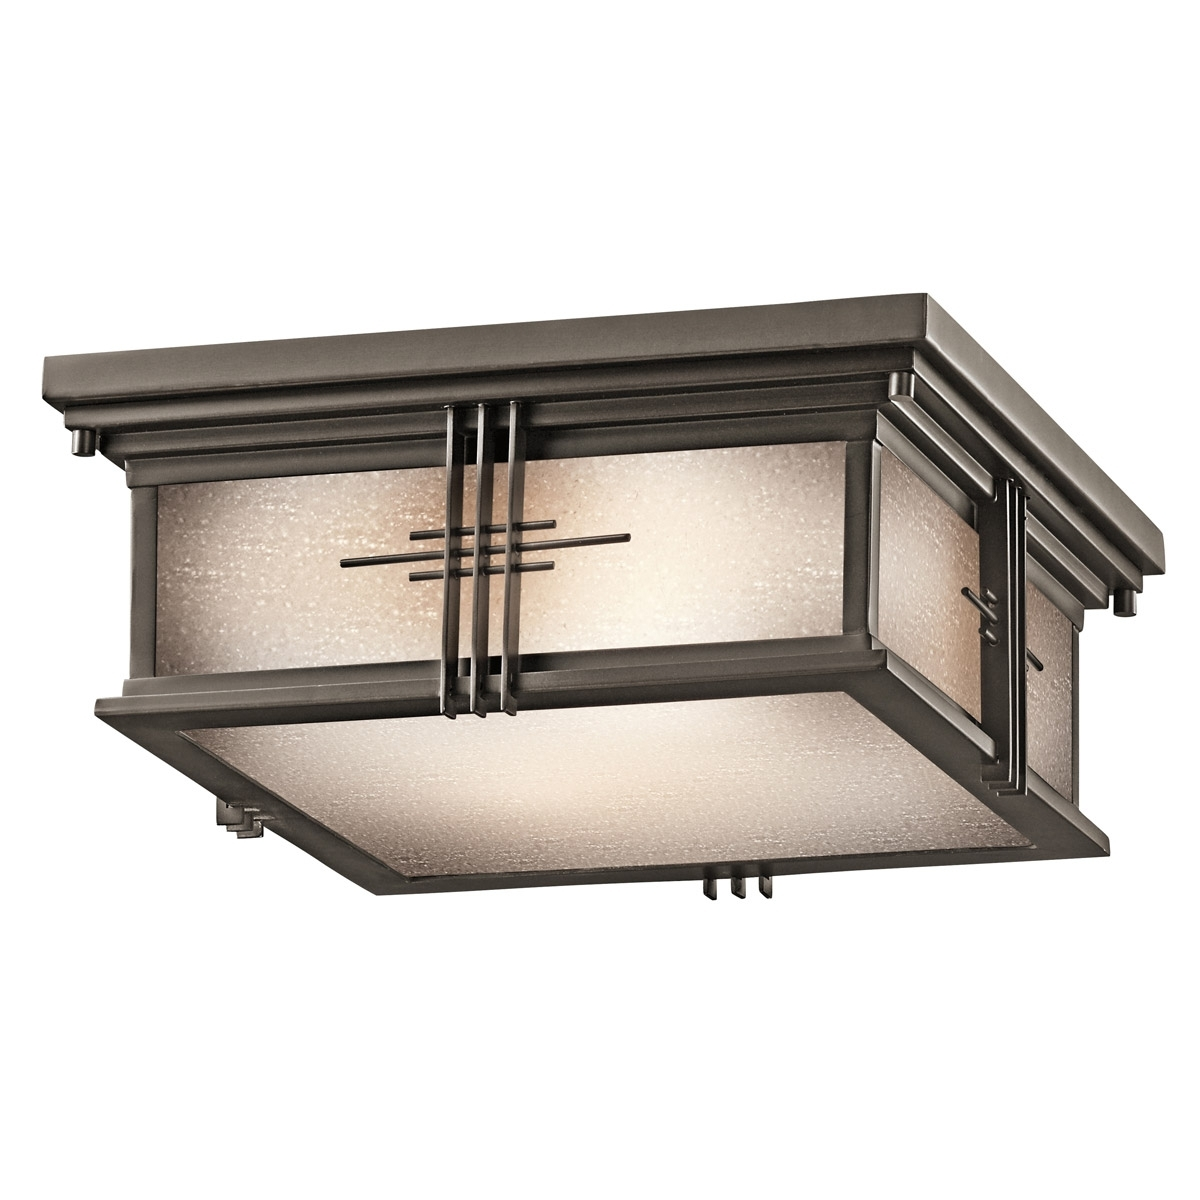 49164Oz Portman Square Outdoor Flush Mount Ceiling Fixture For Most Recently Released Outdoor Ceiling Lighting Fixtures (View 4 of 20)